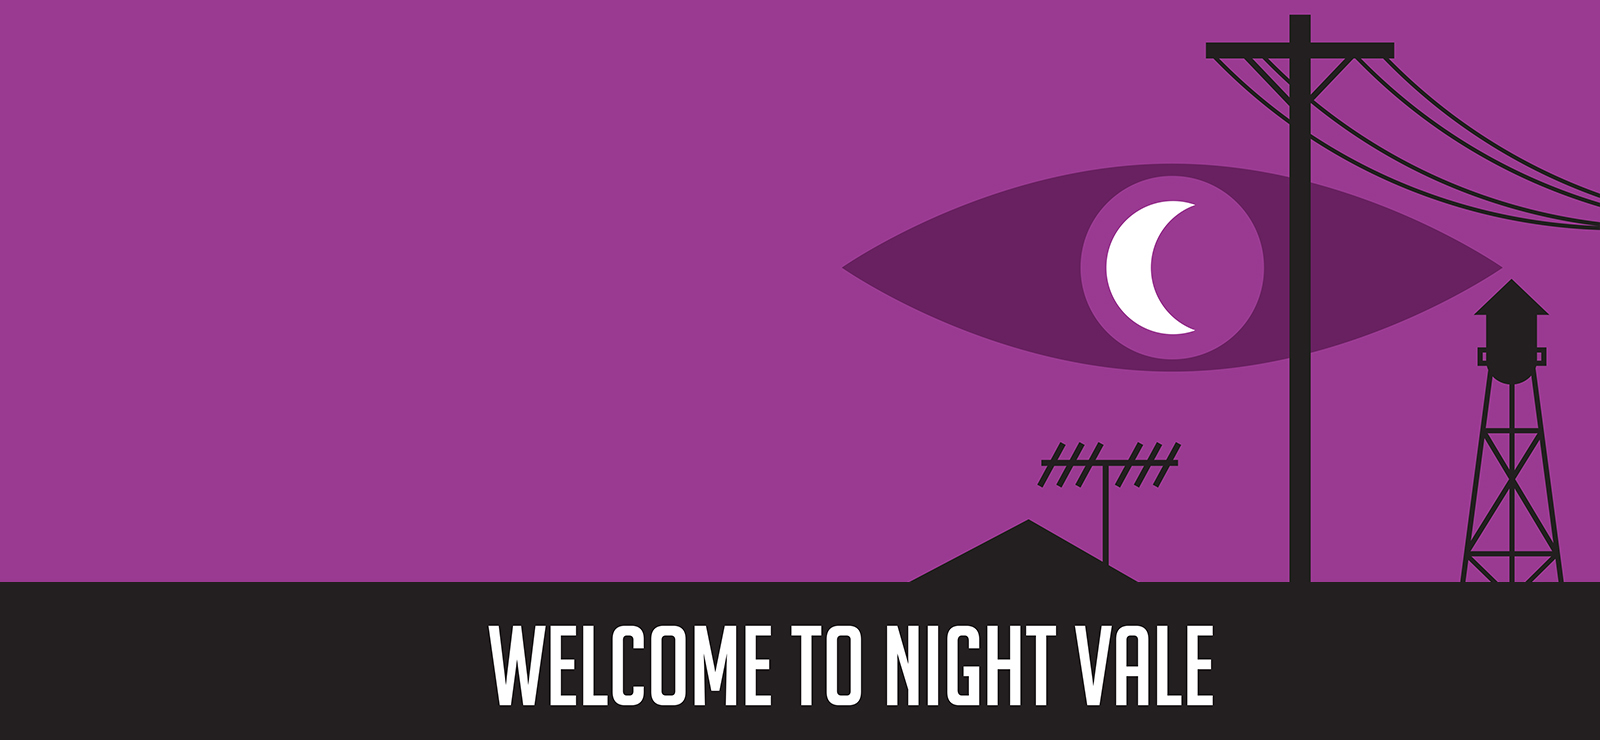 [WELCOME TO NIGHT VALE]